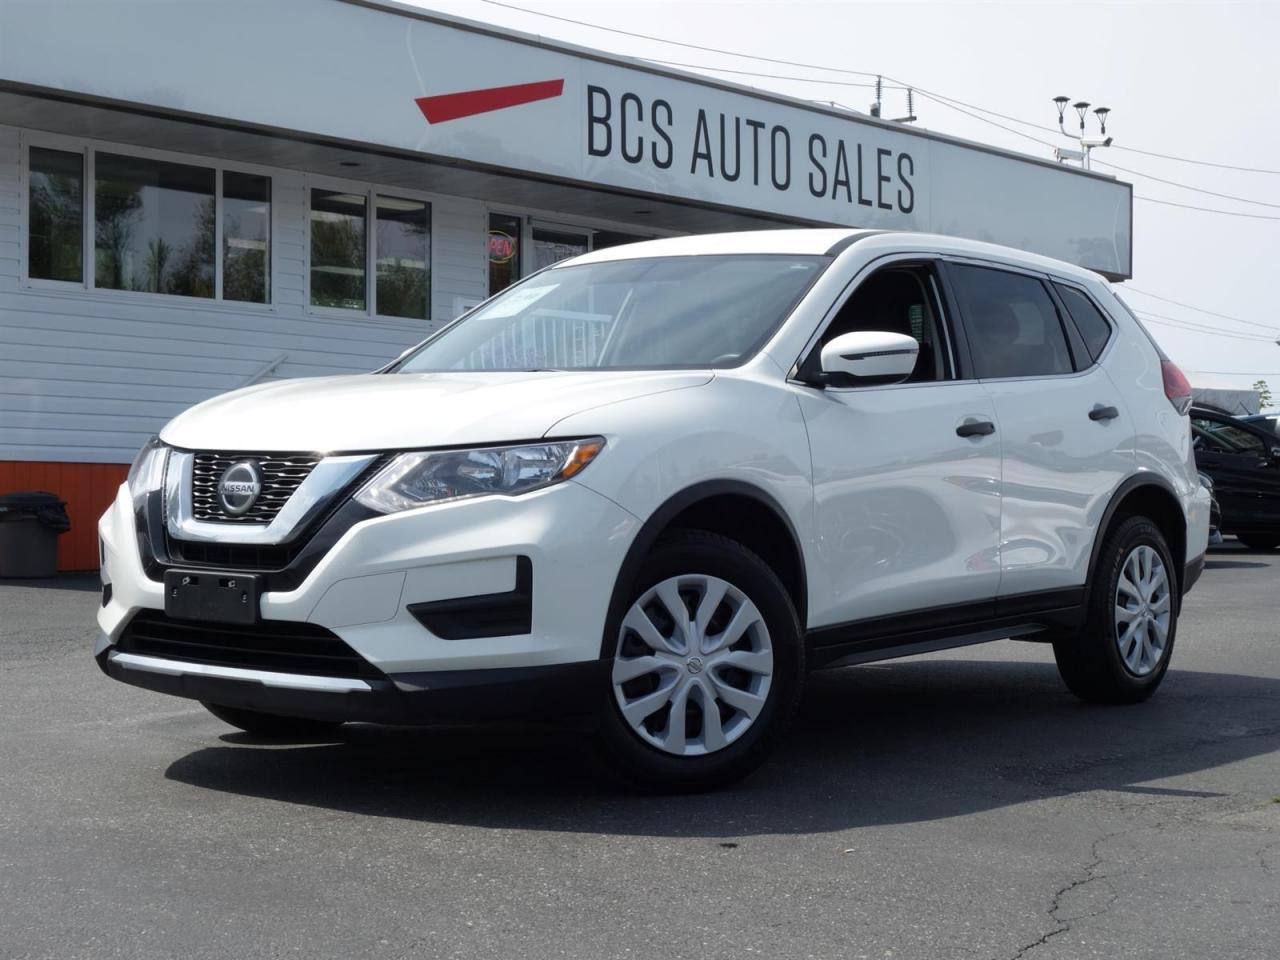 used 2018 nissan rogue for sale in vancouver, british columbia carpages.ca